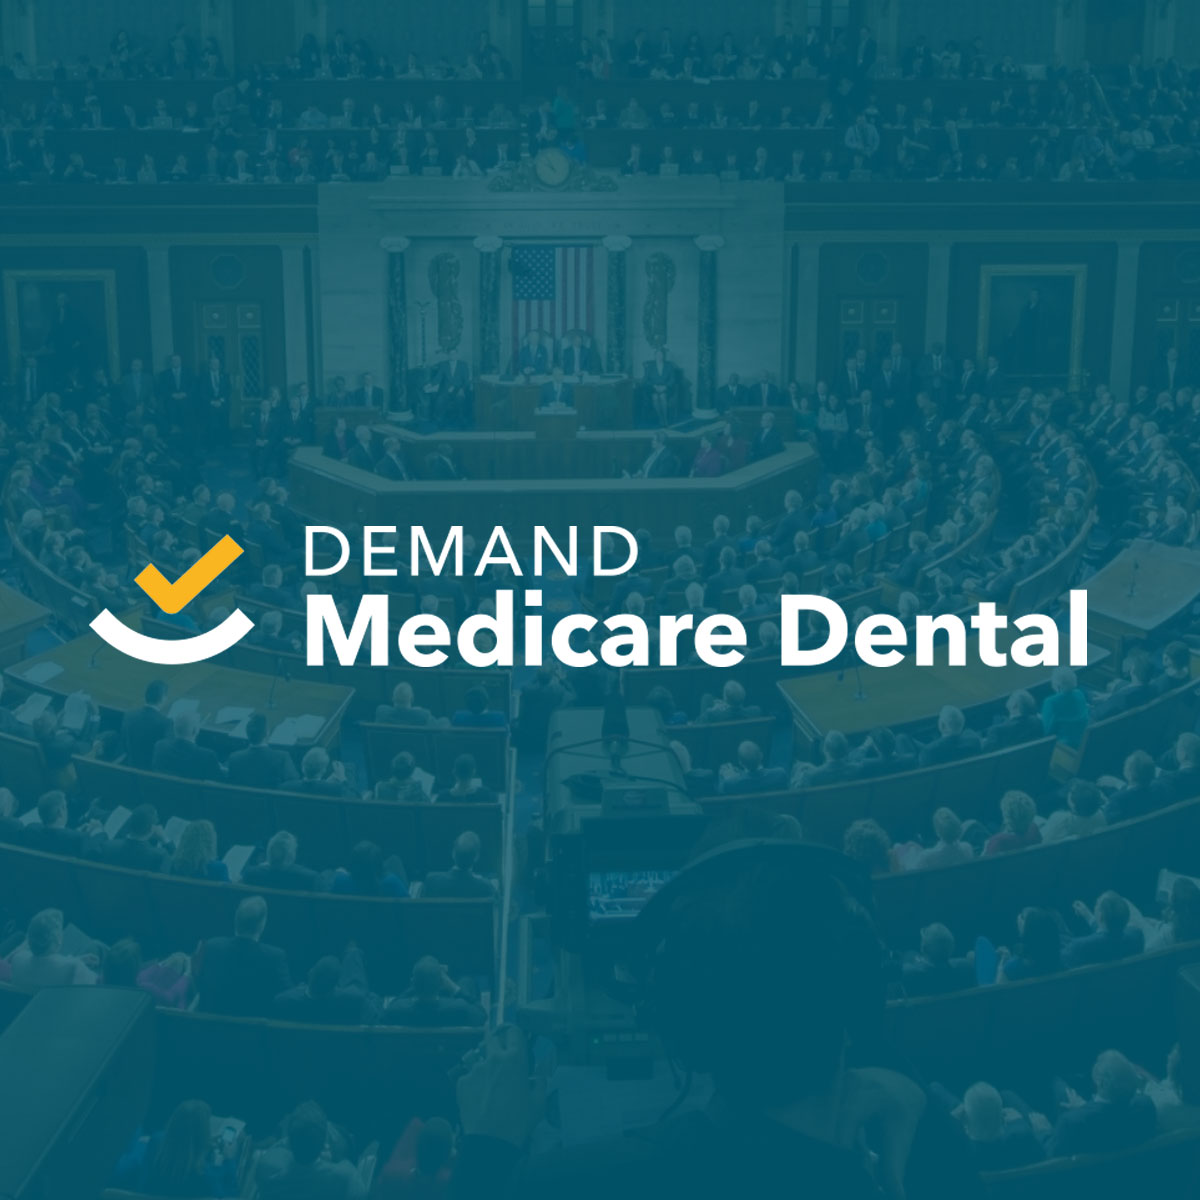 Demand Medicare Dental